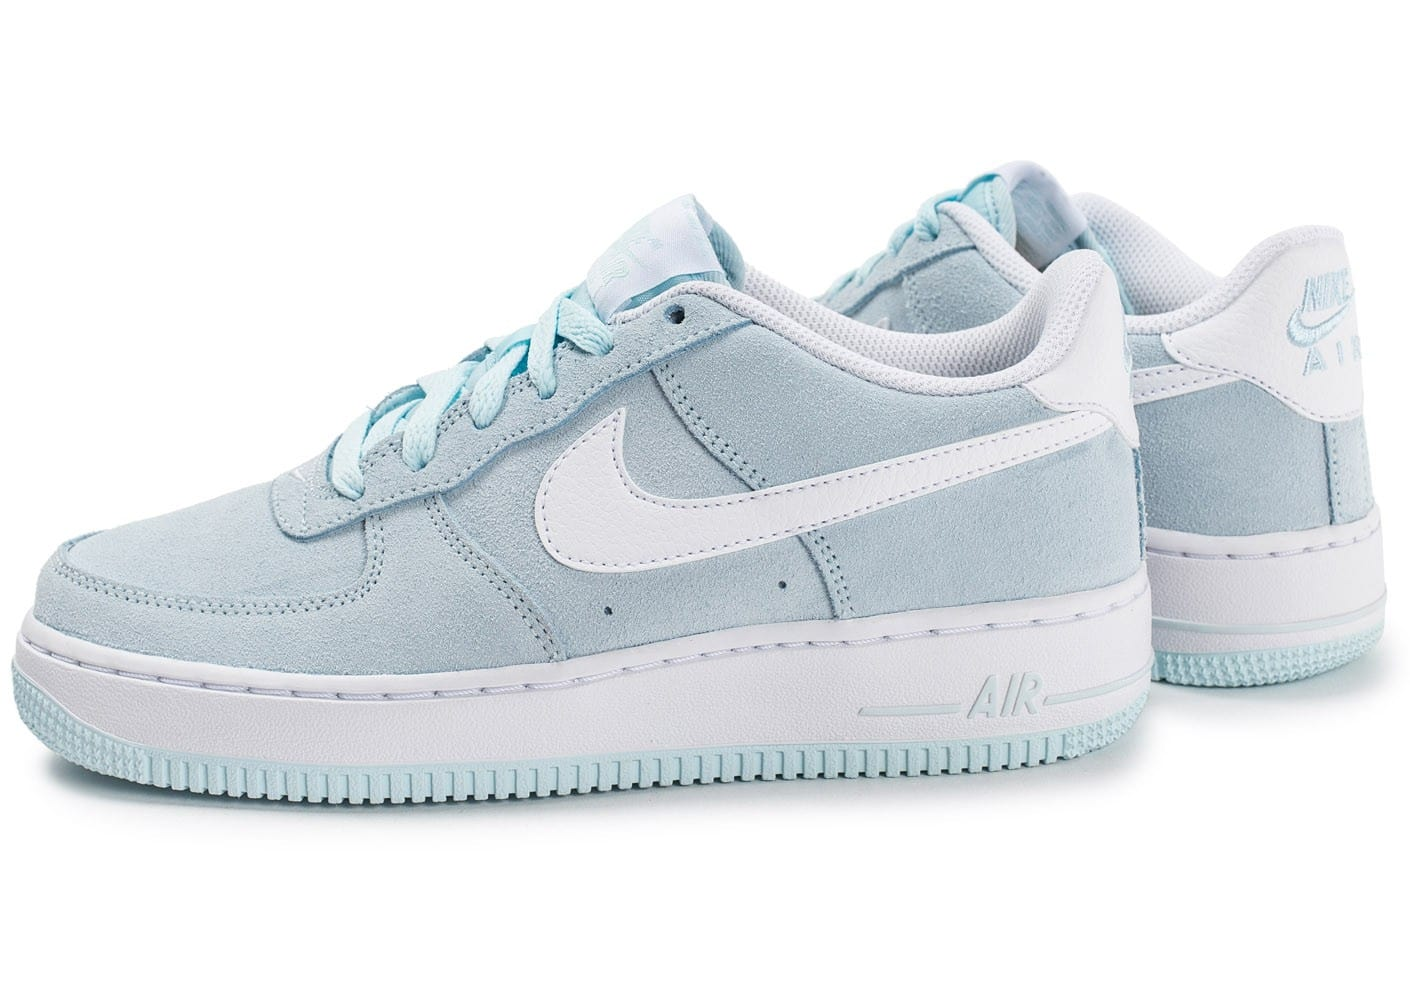 sneakers for cheap 85594 fc08c ... chaussures nike air force 1 suede junior bleu ciel vue par paire